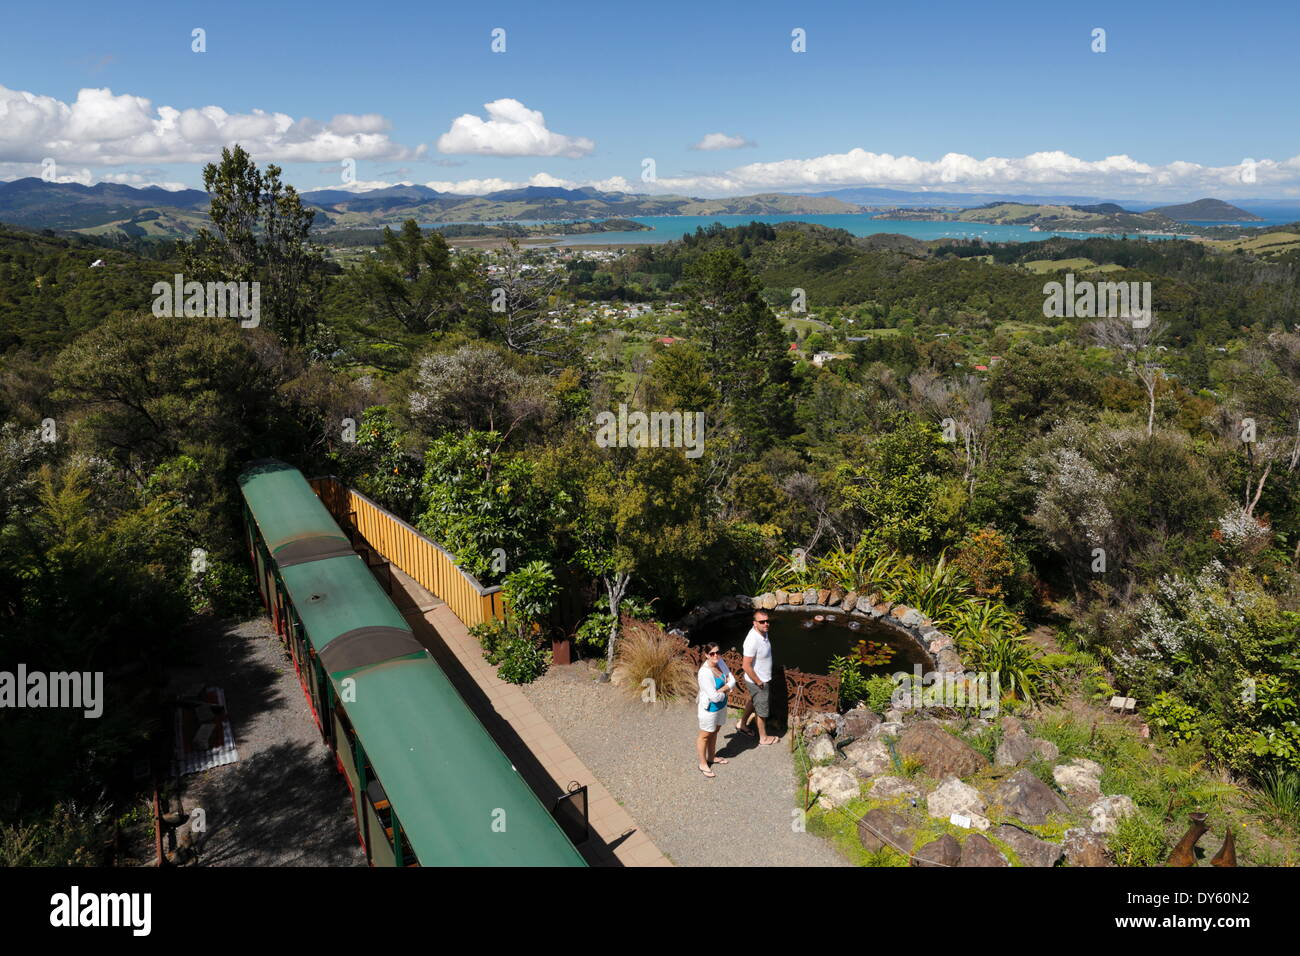 View of Hauraki Gulf from Eyefull Tower, Driving Creek Railway, Coromandel Peninsula, Waikato, North Island, New Zealand - Stock Image